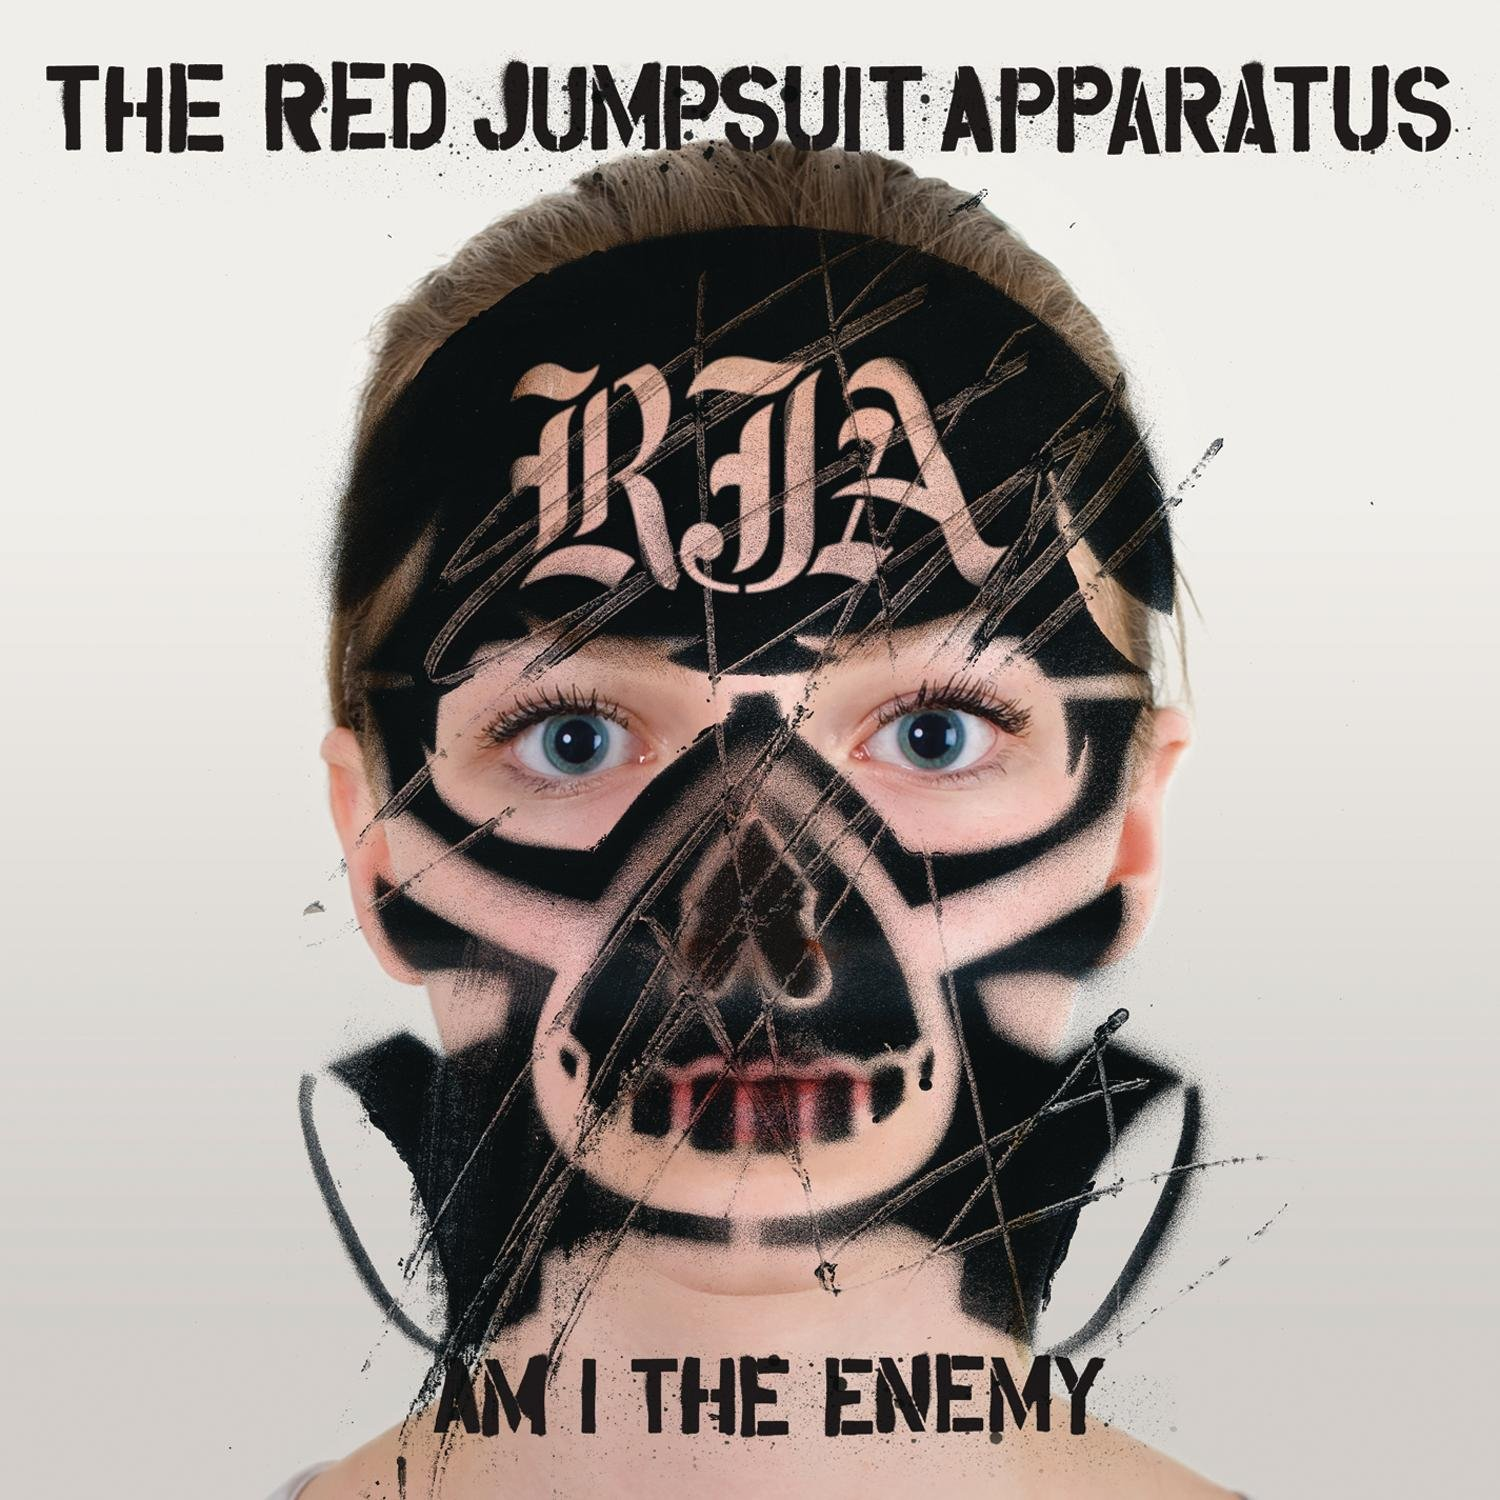 The Red Jumpsuit Apparatus - Am I the Enemy - Amazon.com Music